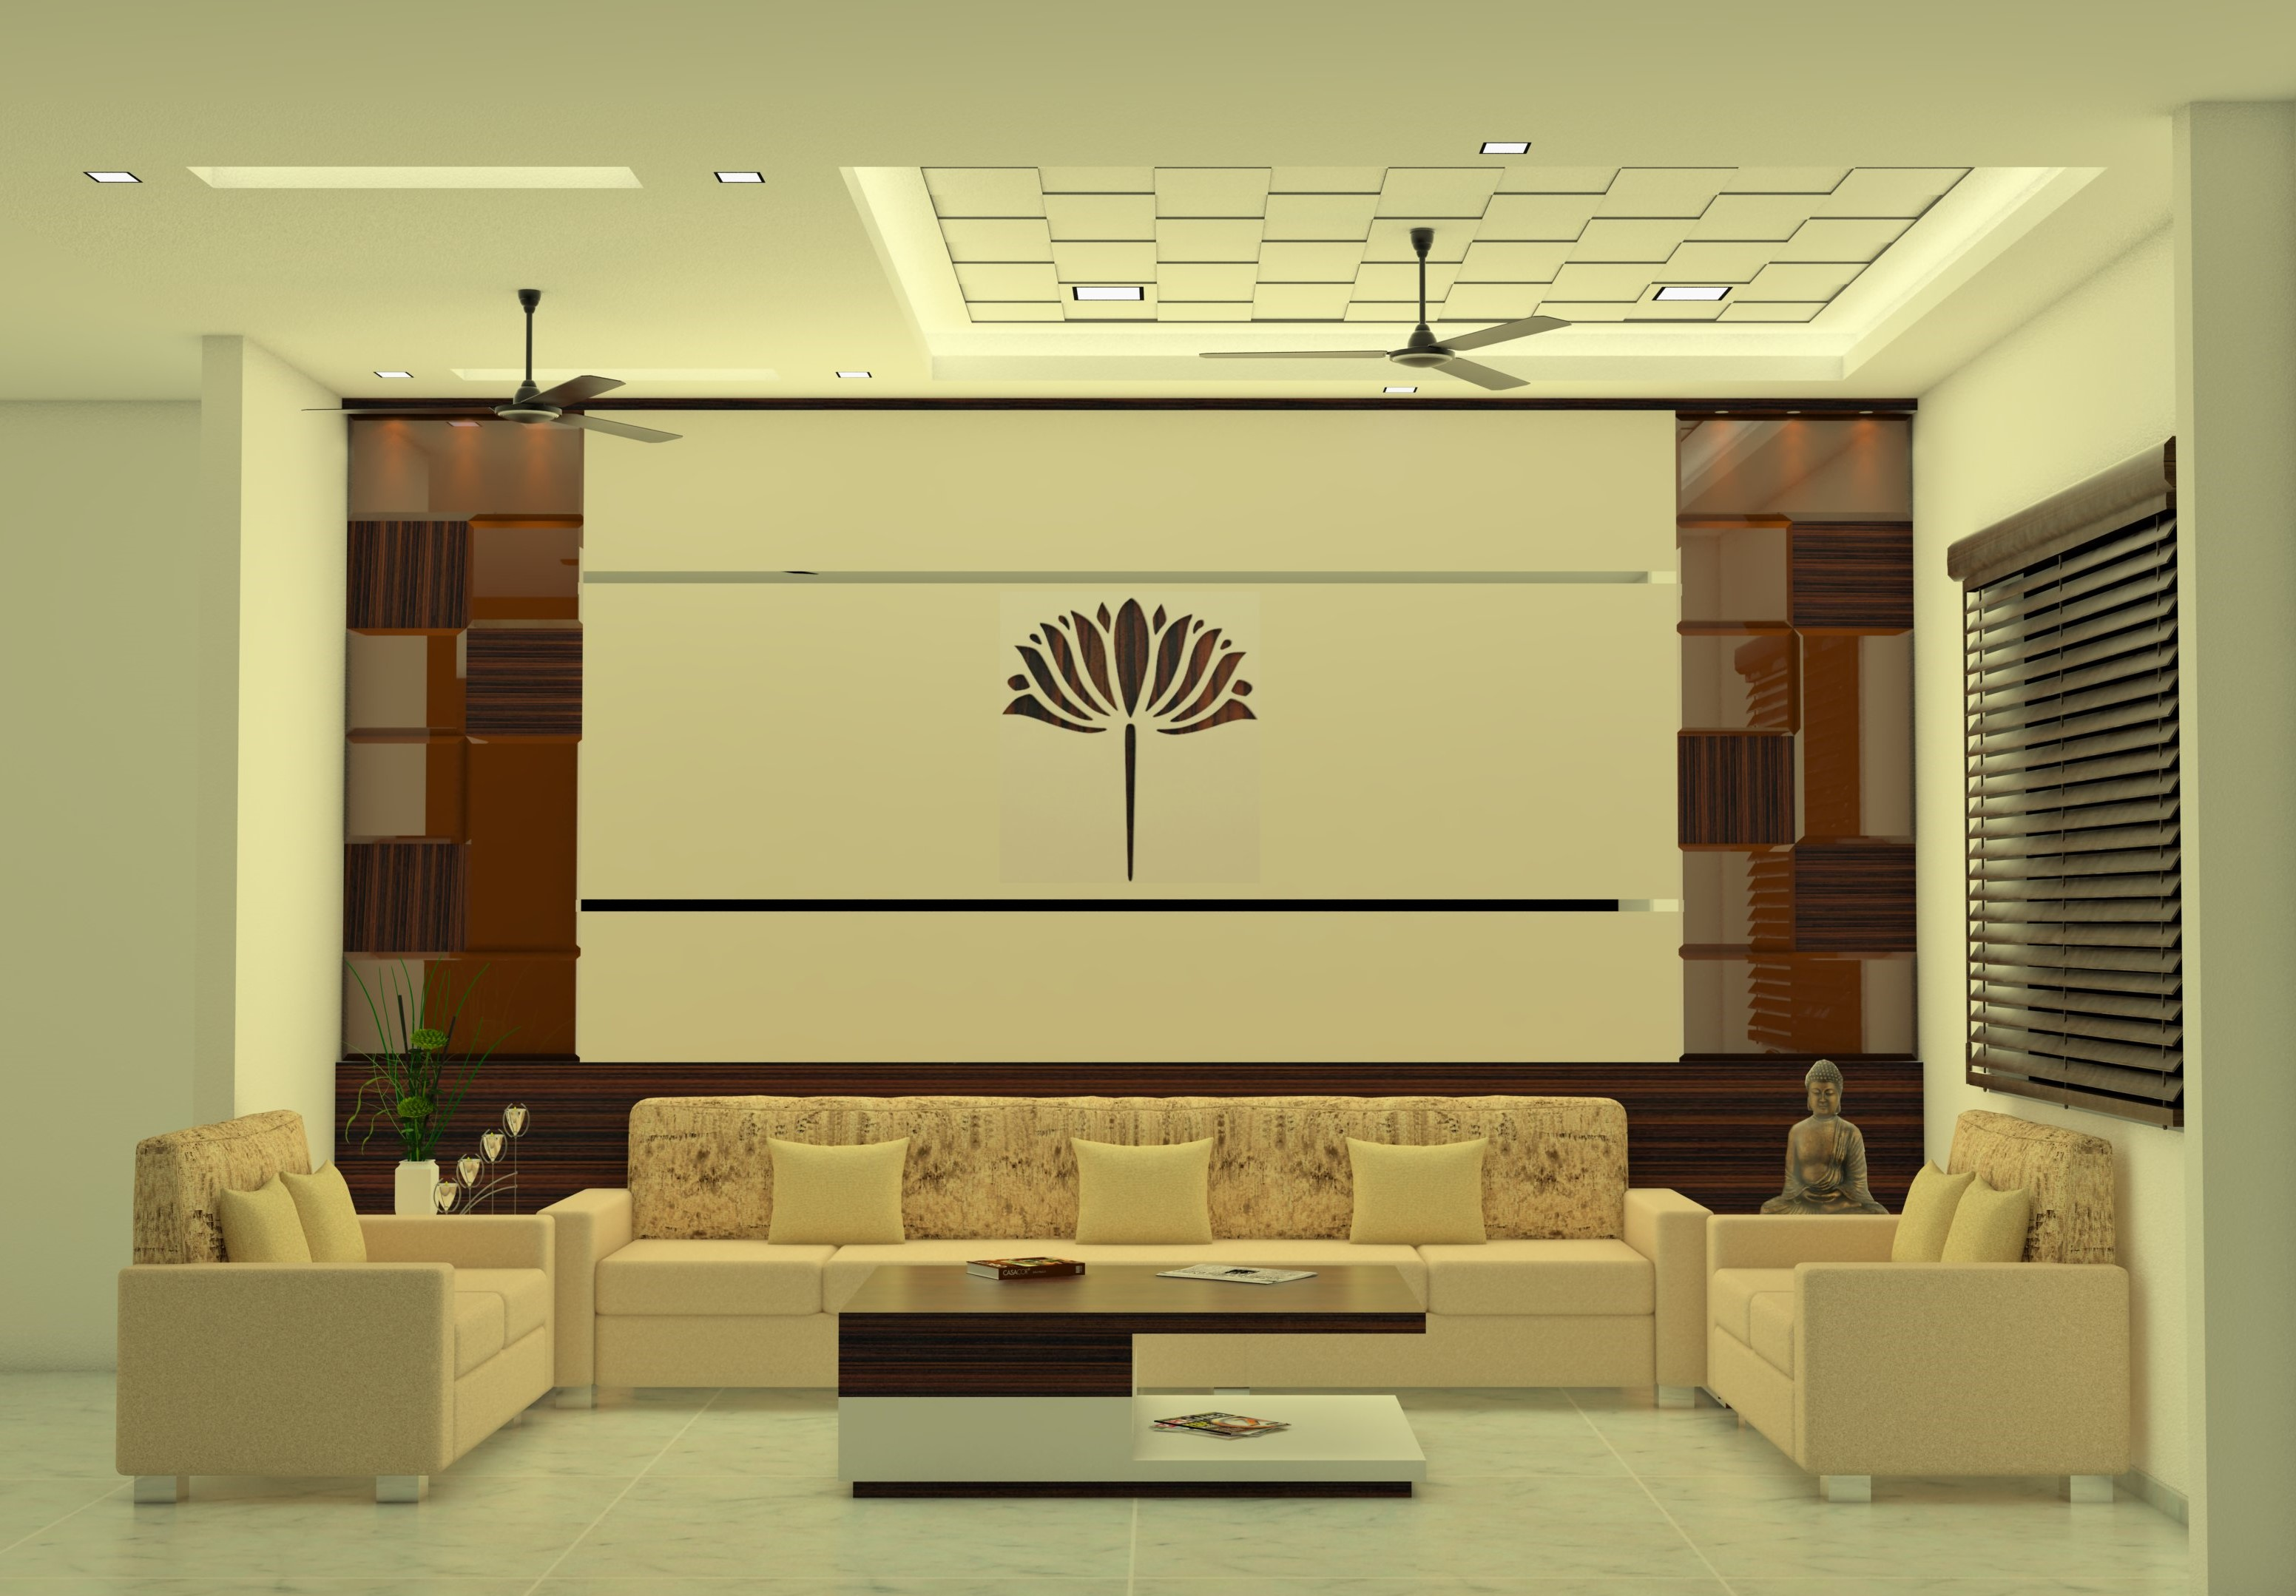 WORK DONE IN SKETCHUP VRAY